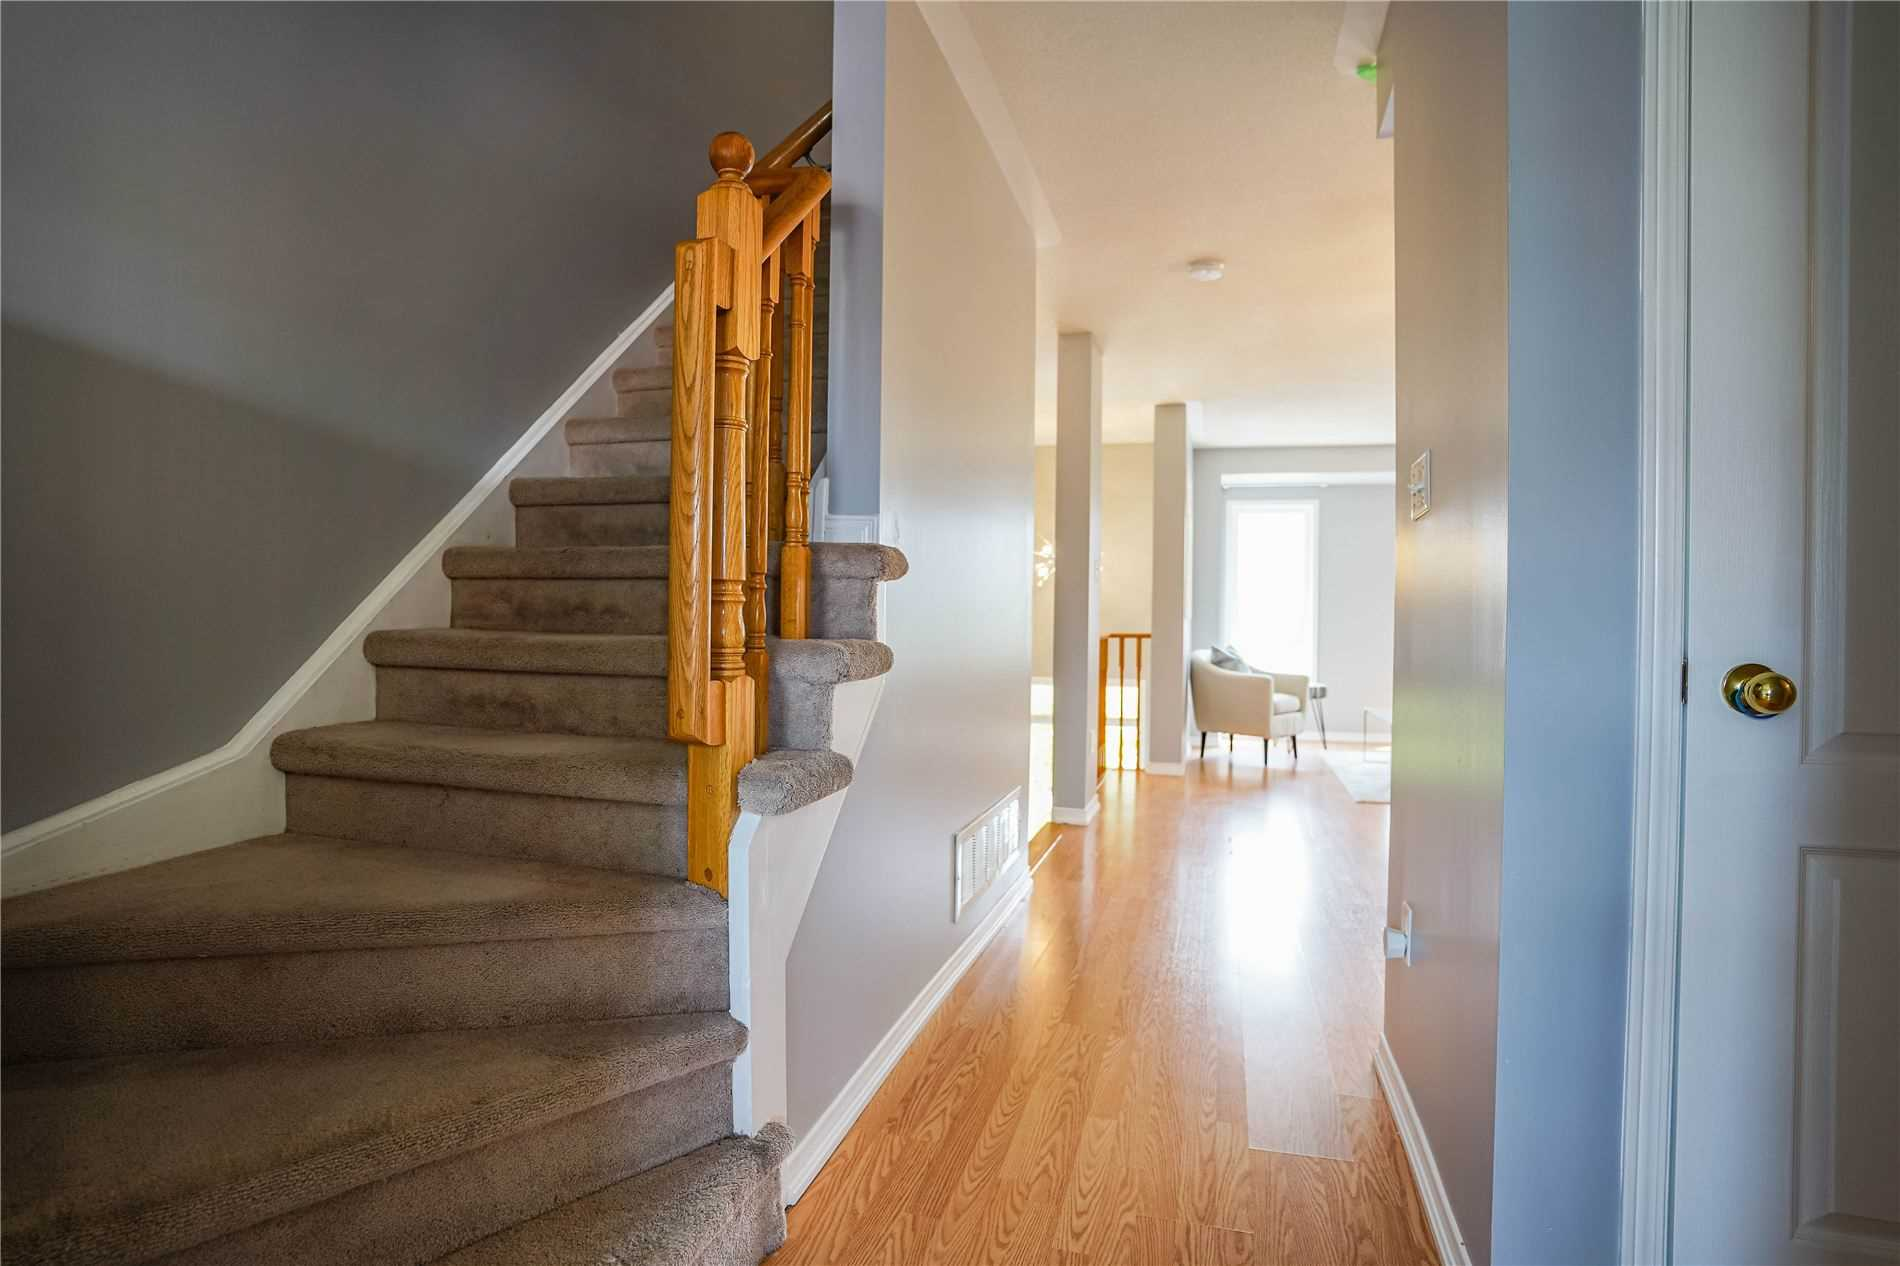 Image 3 of 25 showing inside of 3 Bedroom Condo Townhouse 3-Storey for Sale at 68 Oakins Lane W Unit# 34, Ajax L1T0H1